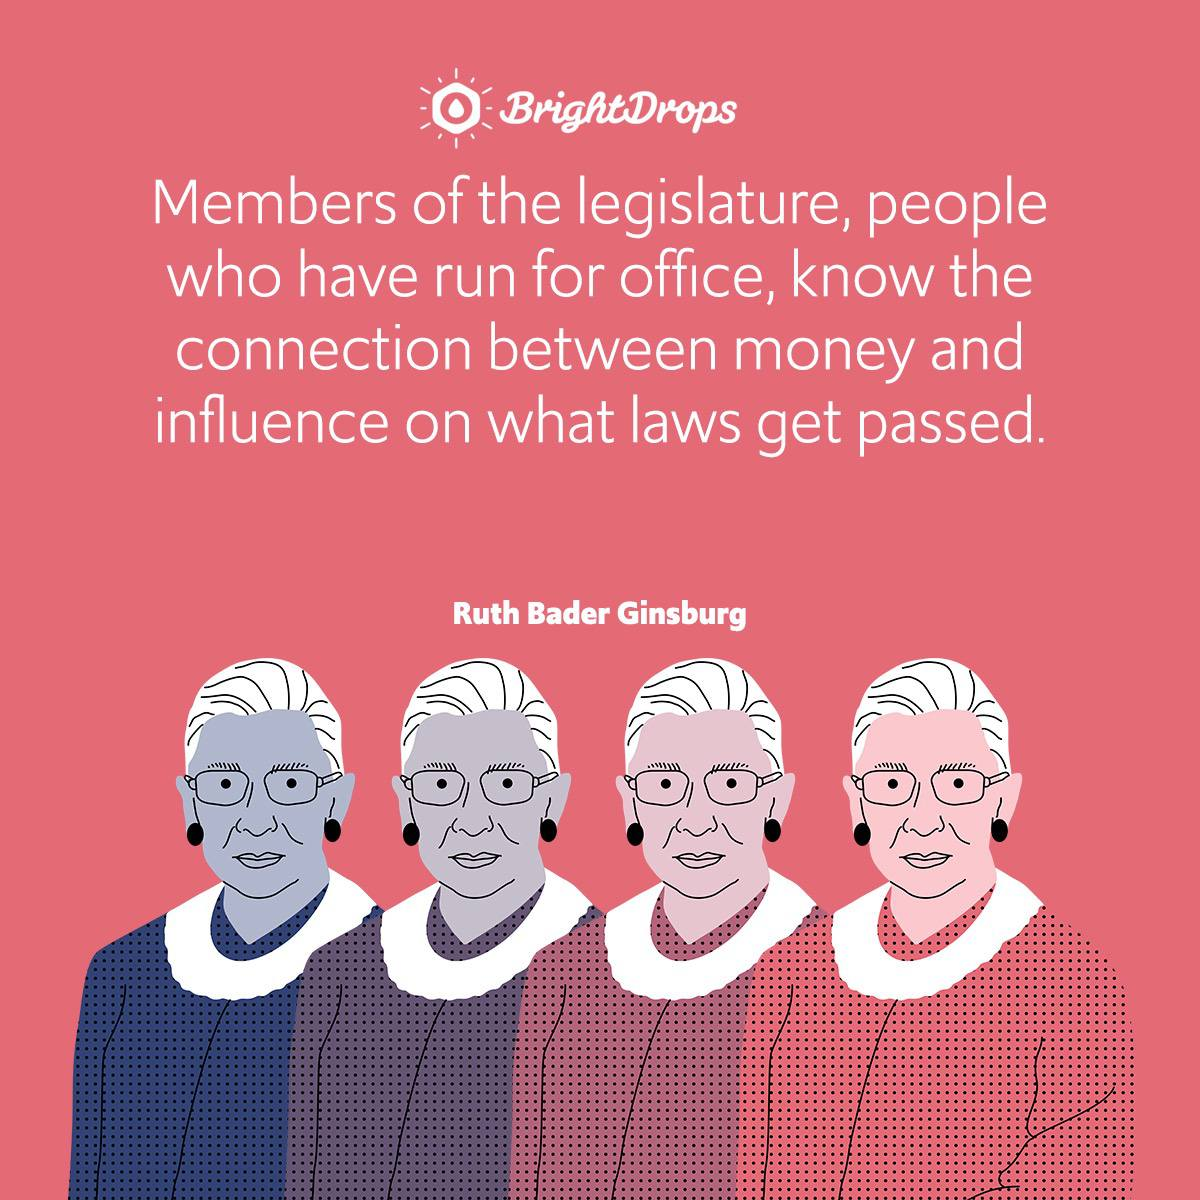 Members of the legislature, people who have run for office, know the connection between money and influence on what laws get passed.